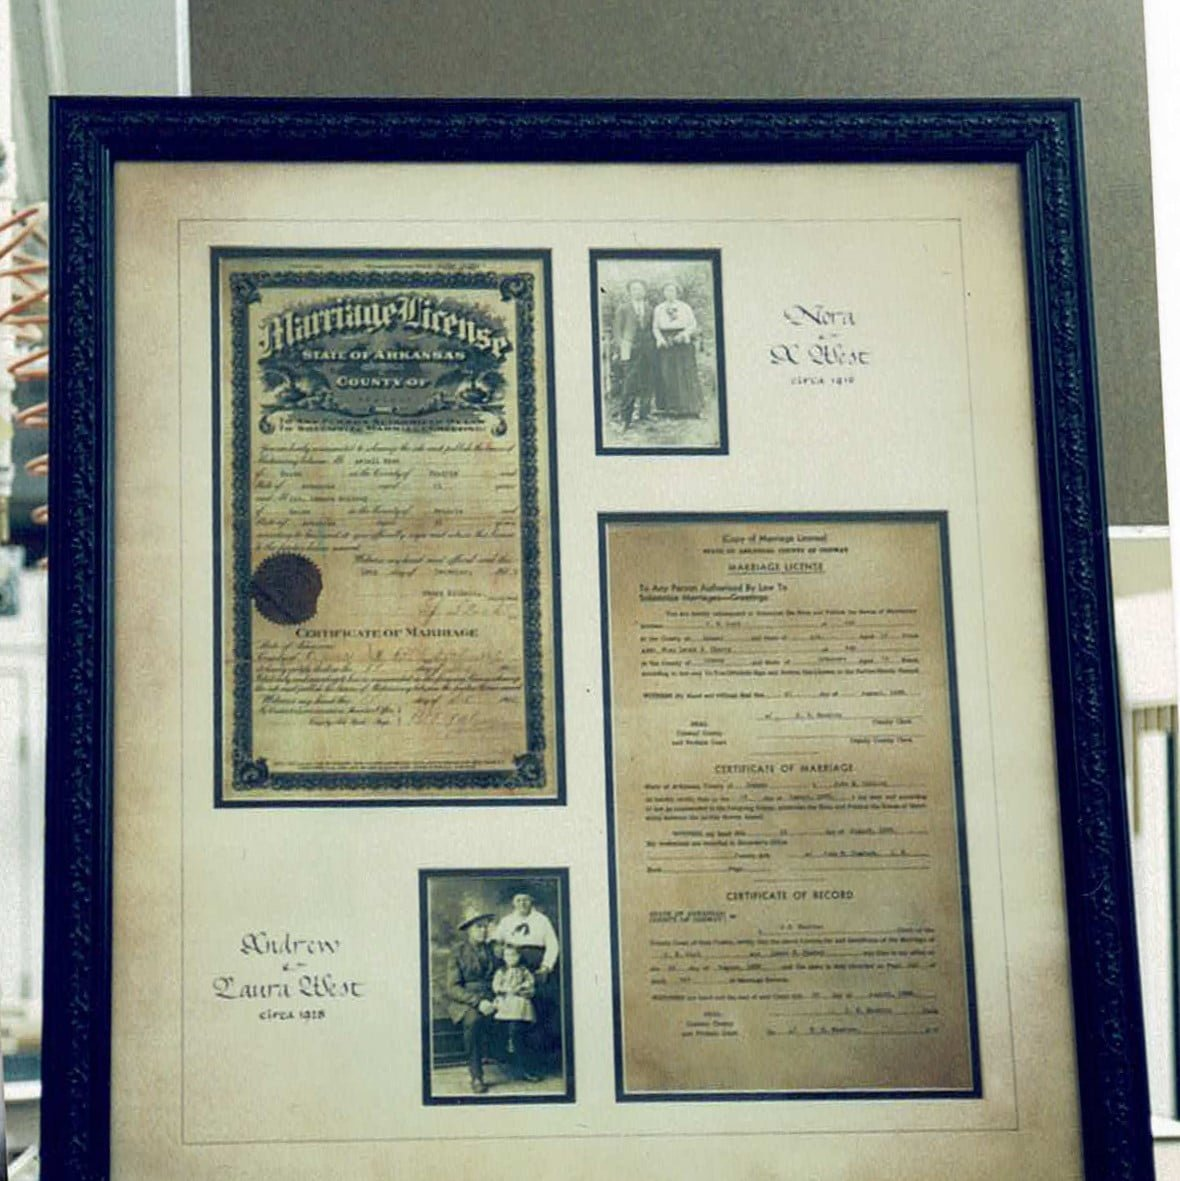 vintage photography and diplomas within a custom built photo archival frame